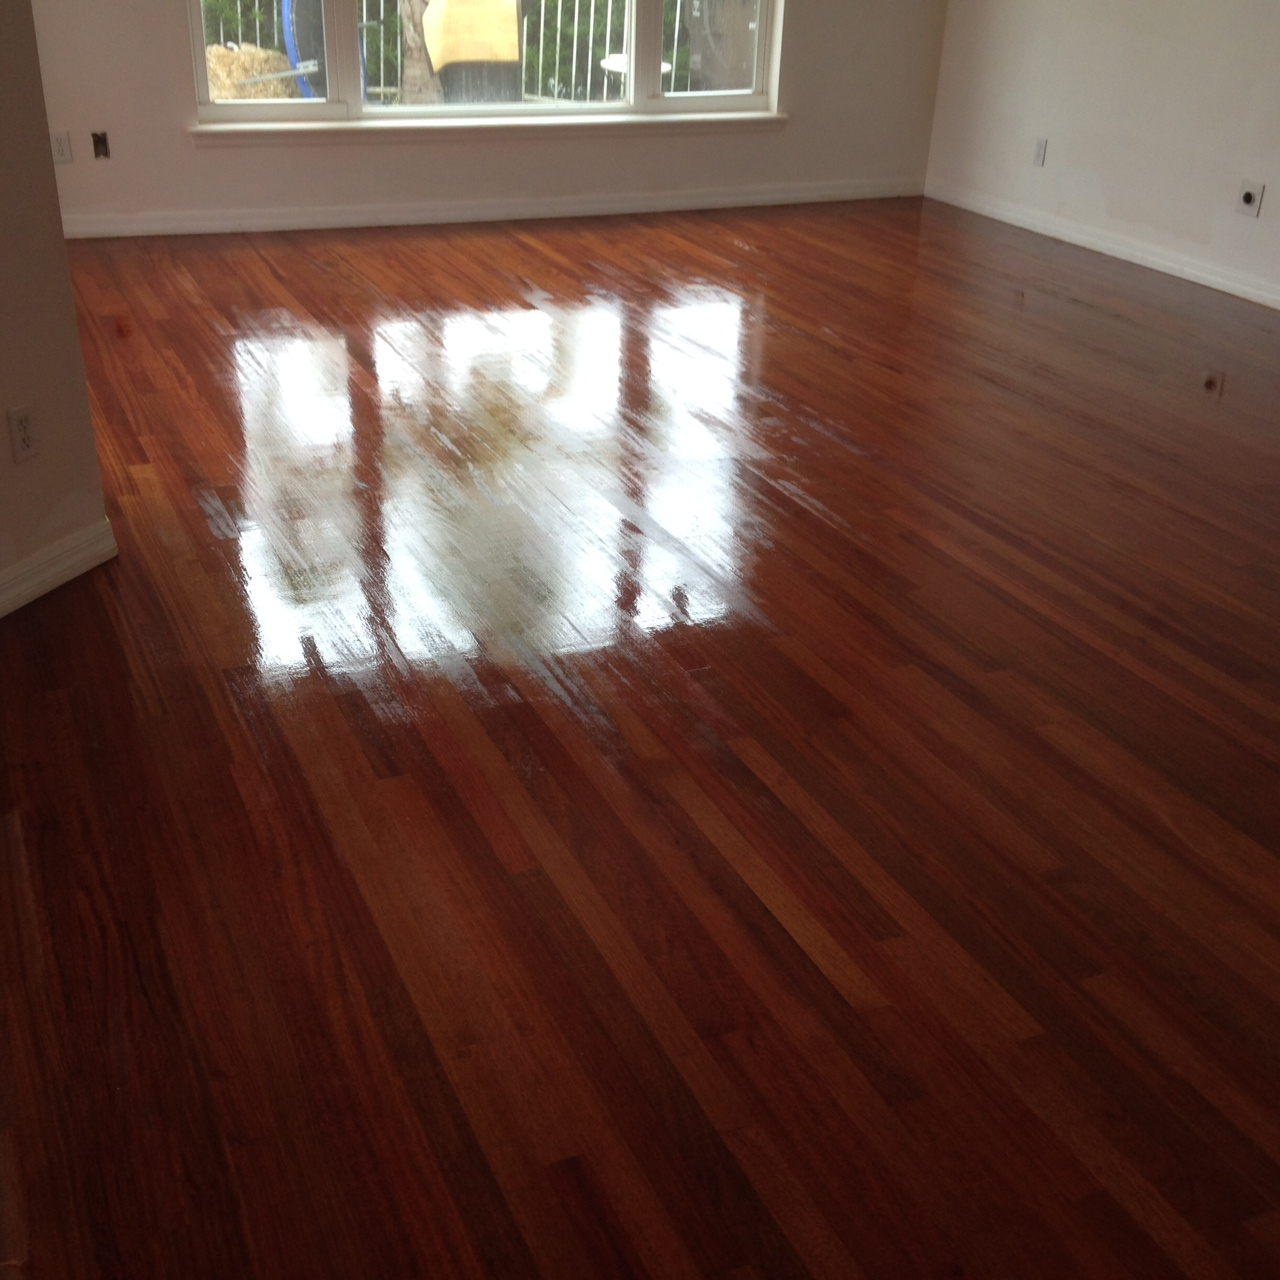 Refinished Brazilian Cherry Wood Floor in St. Augustine, Florida - Brazilian Cherry Wood Archives - Dan's Floor Store